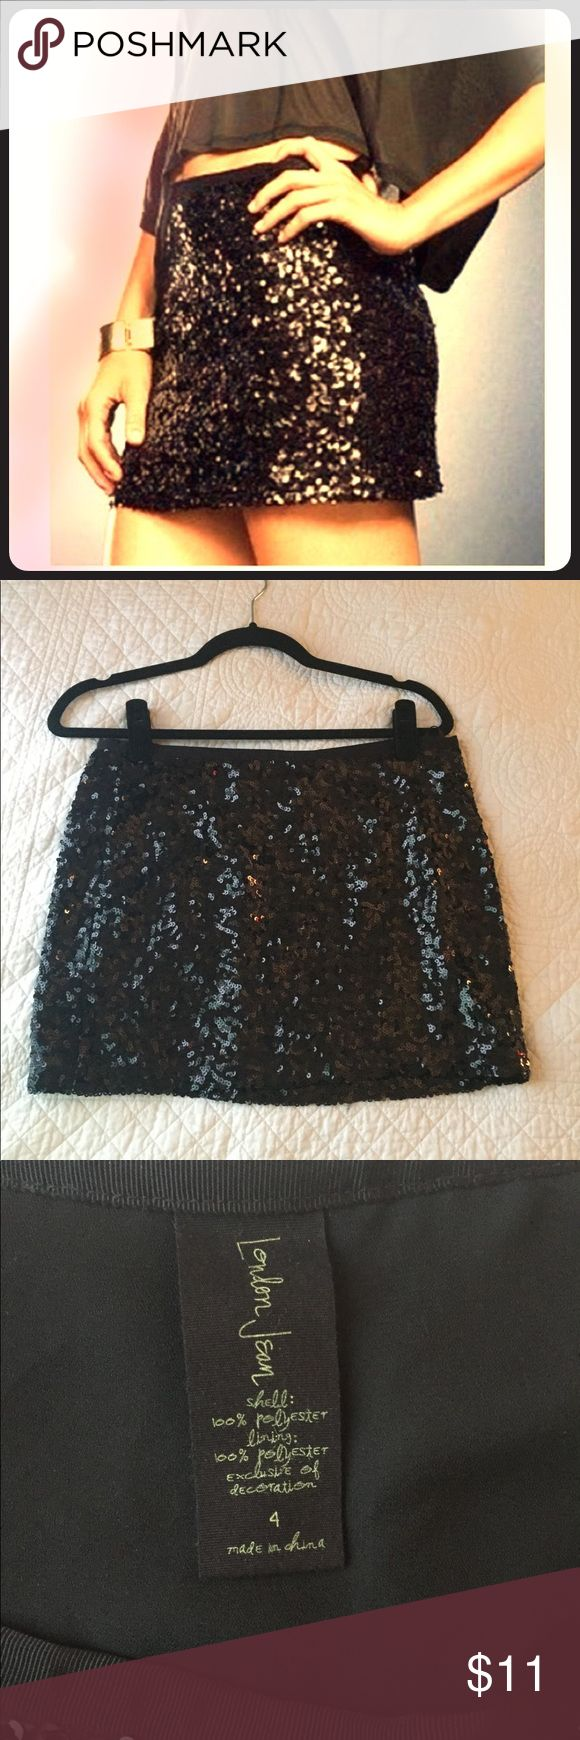 Black sequin mini skirt Black sequin mini skirt by London Jean/Victoria's Secret. Like new. Size 4. Smoke-free/pet-free home. Victoria's Secret Skirts Mini